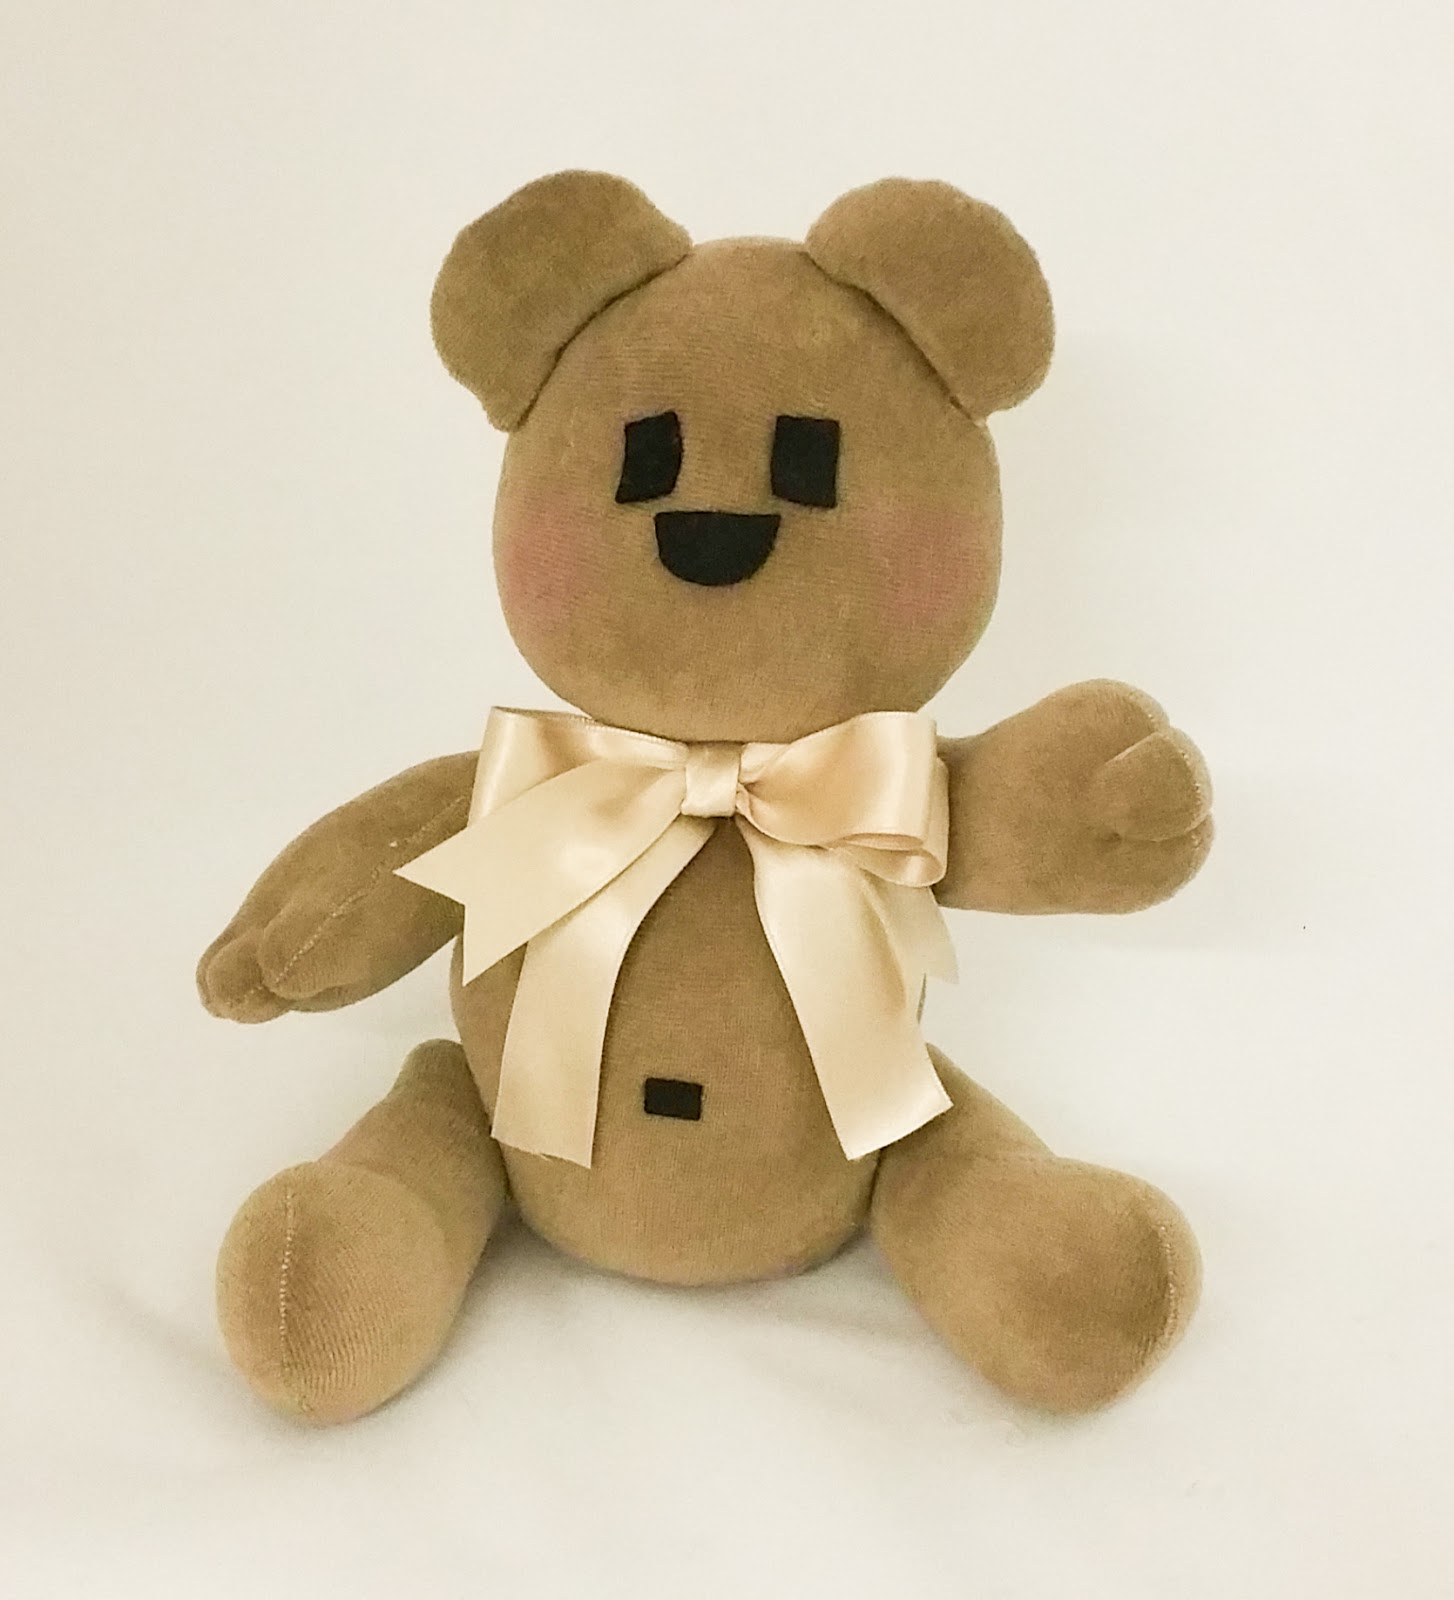 Preferenza Angeli di Pezza: Un Teddy Bear Facile Facile QW65